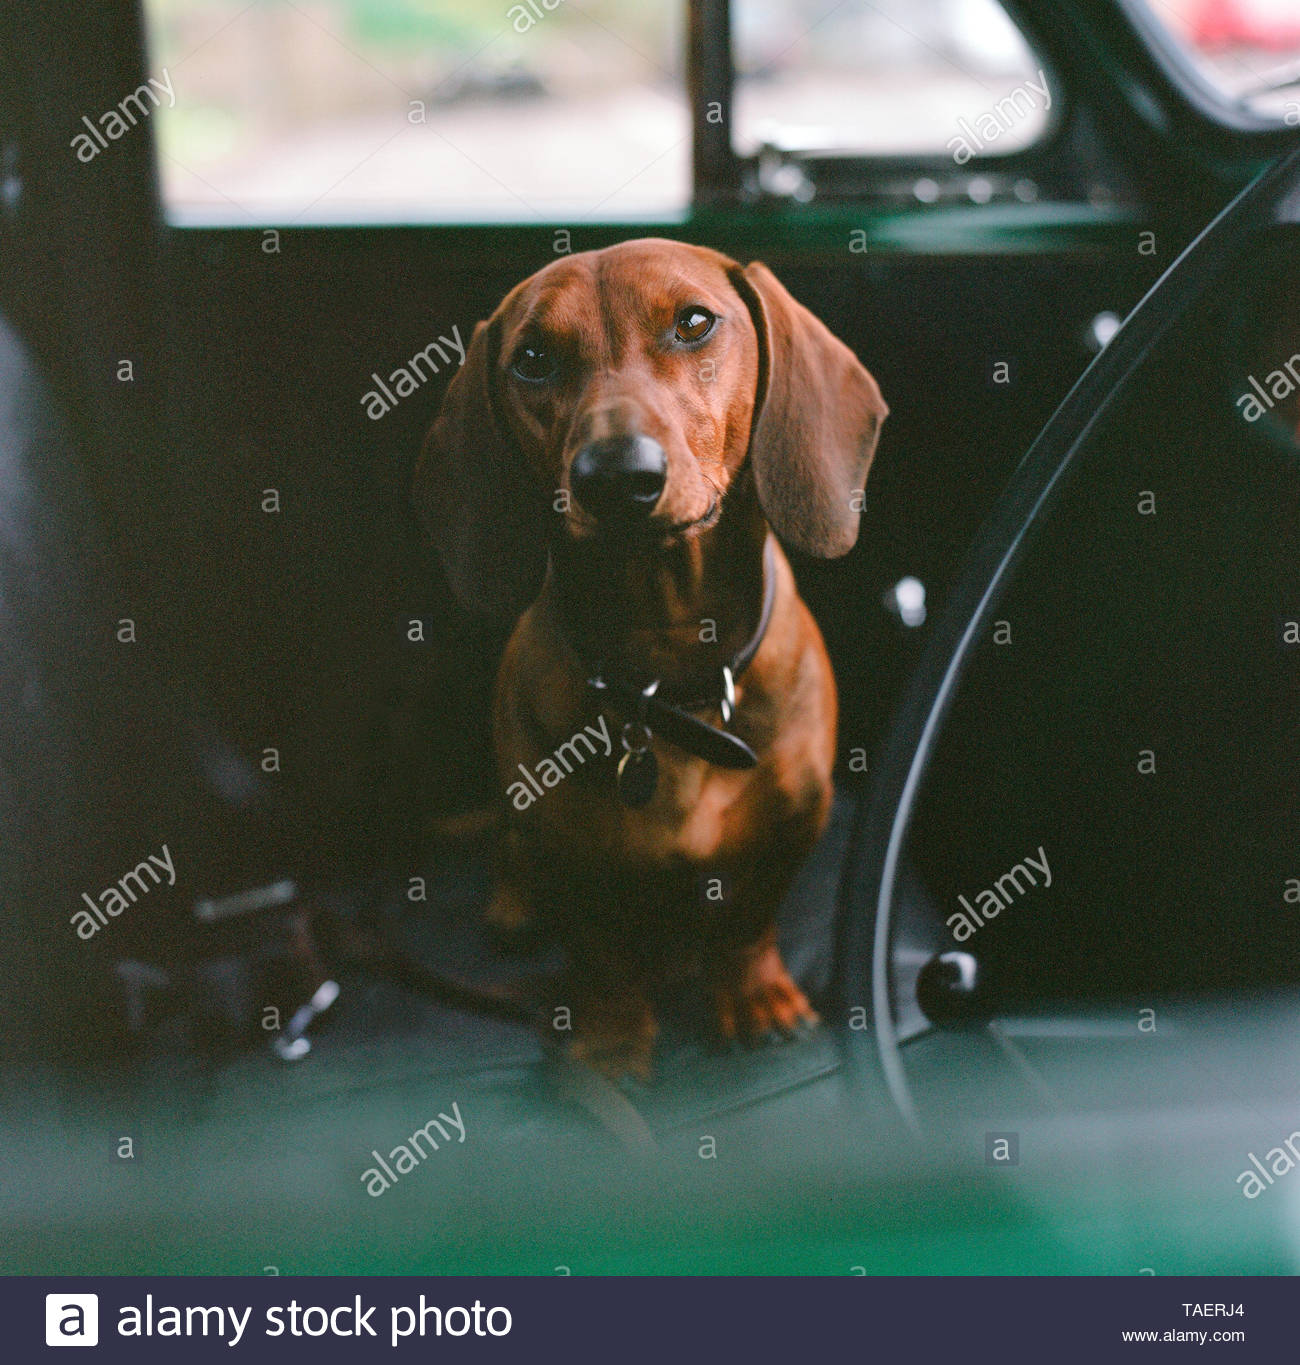 Dachshund dog looks at viewer, whilst sat on seat of a vintage motor vehicle. Stroud, UK. Stock Photo